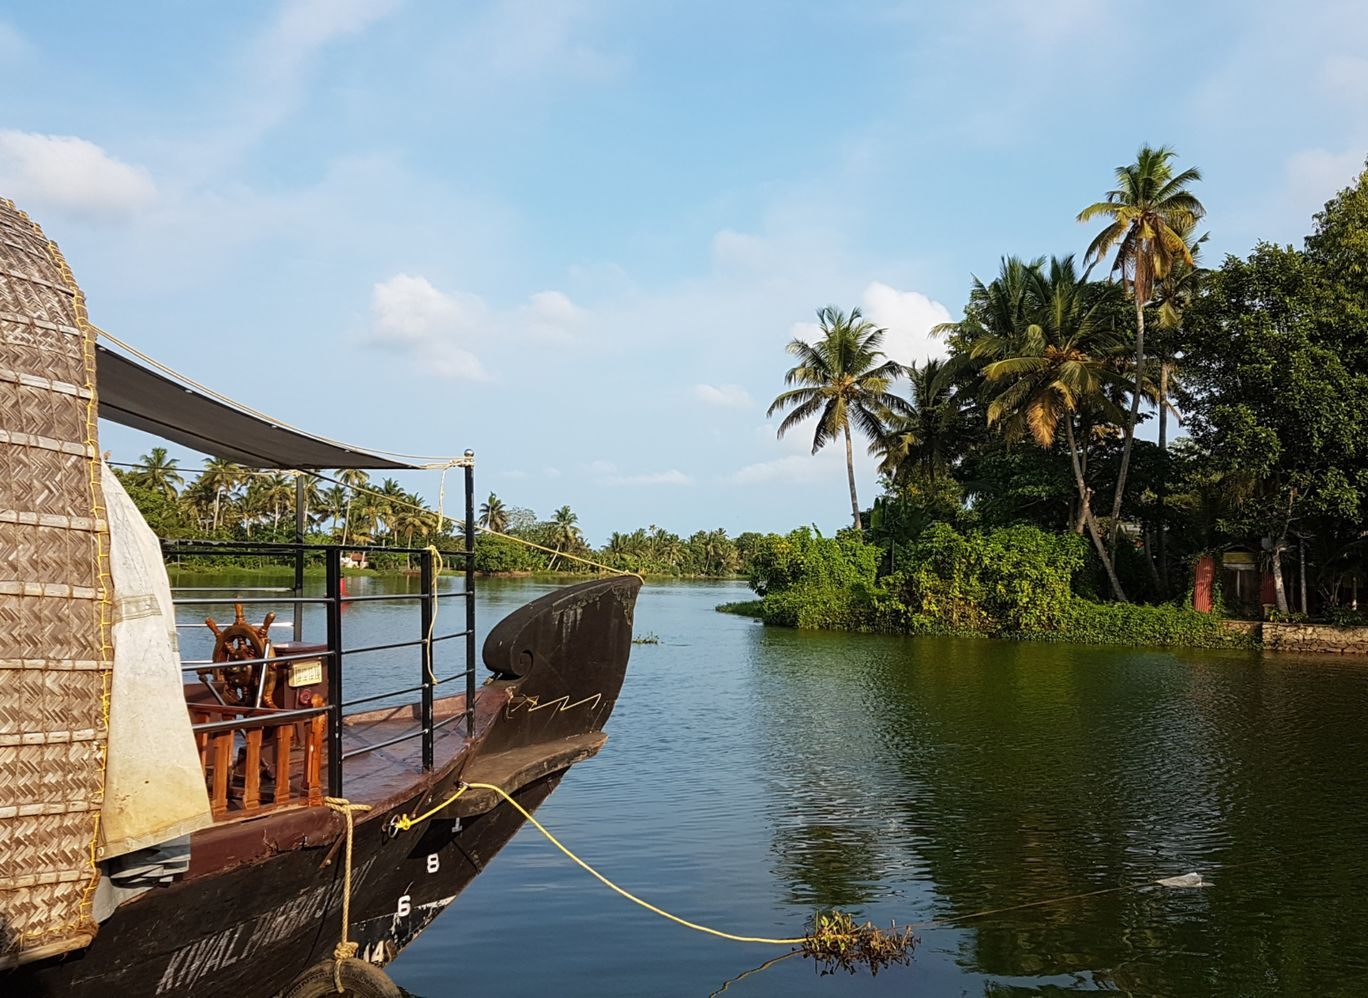 Photo of Alleppey Boat House By Sharmistha Dey